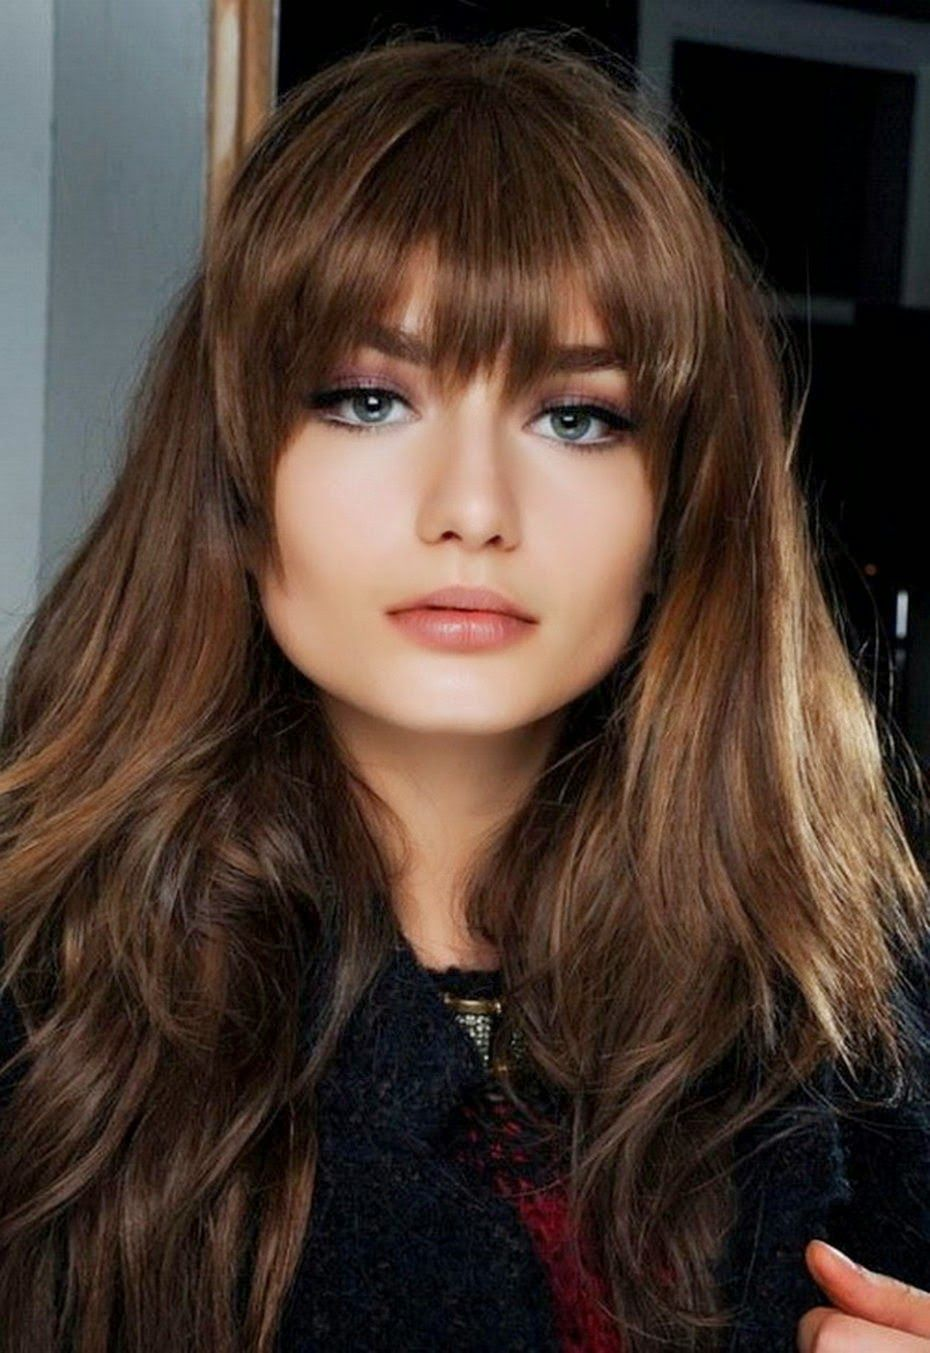 Long Hairstyles 2015 Url Https Latesthair Stylez Blogspot Com 2015 05 Long Hairsty New Hair Style Image Cool Hairstyles For Girls Long Haircuts With Bangs